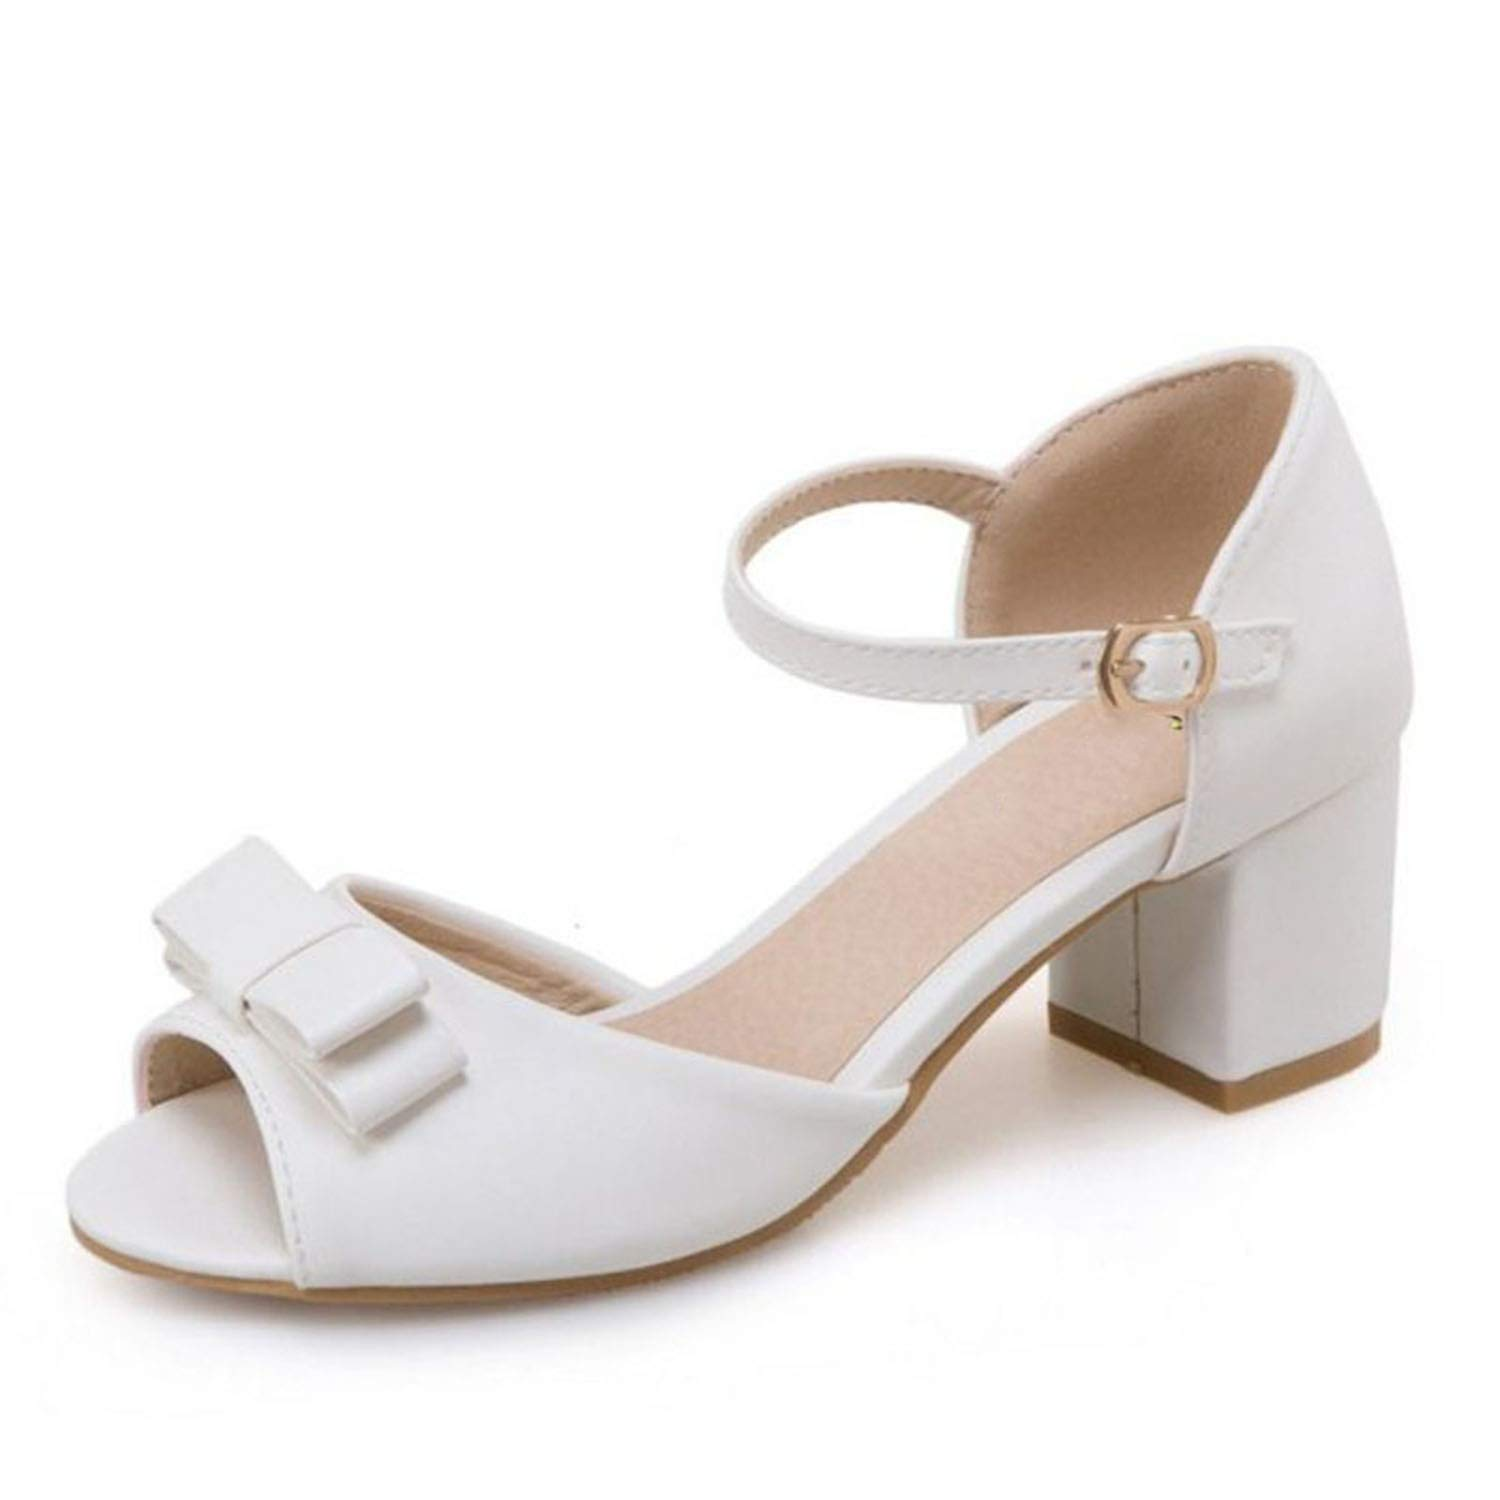 White Wenzi-day sandals Women's Ankle Strap Summer shoes Women Bowknot High Heel Sanadals Sweet shoes